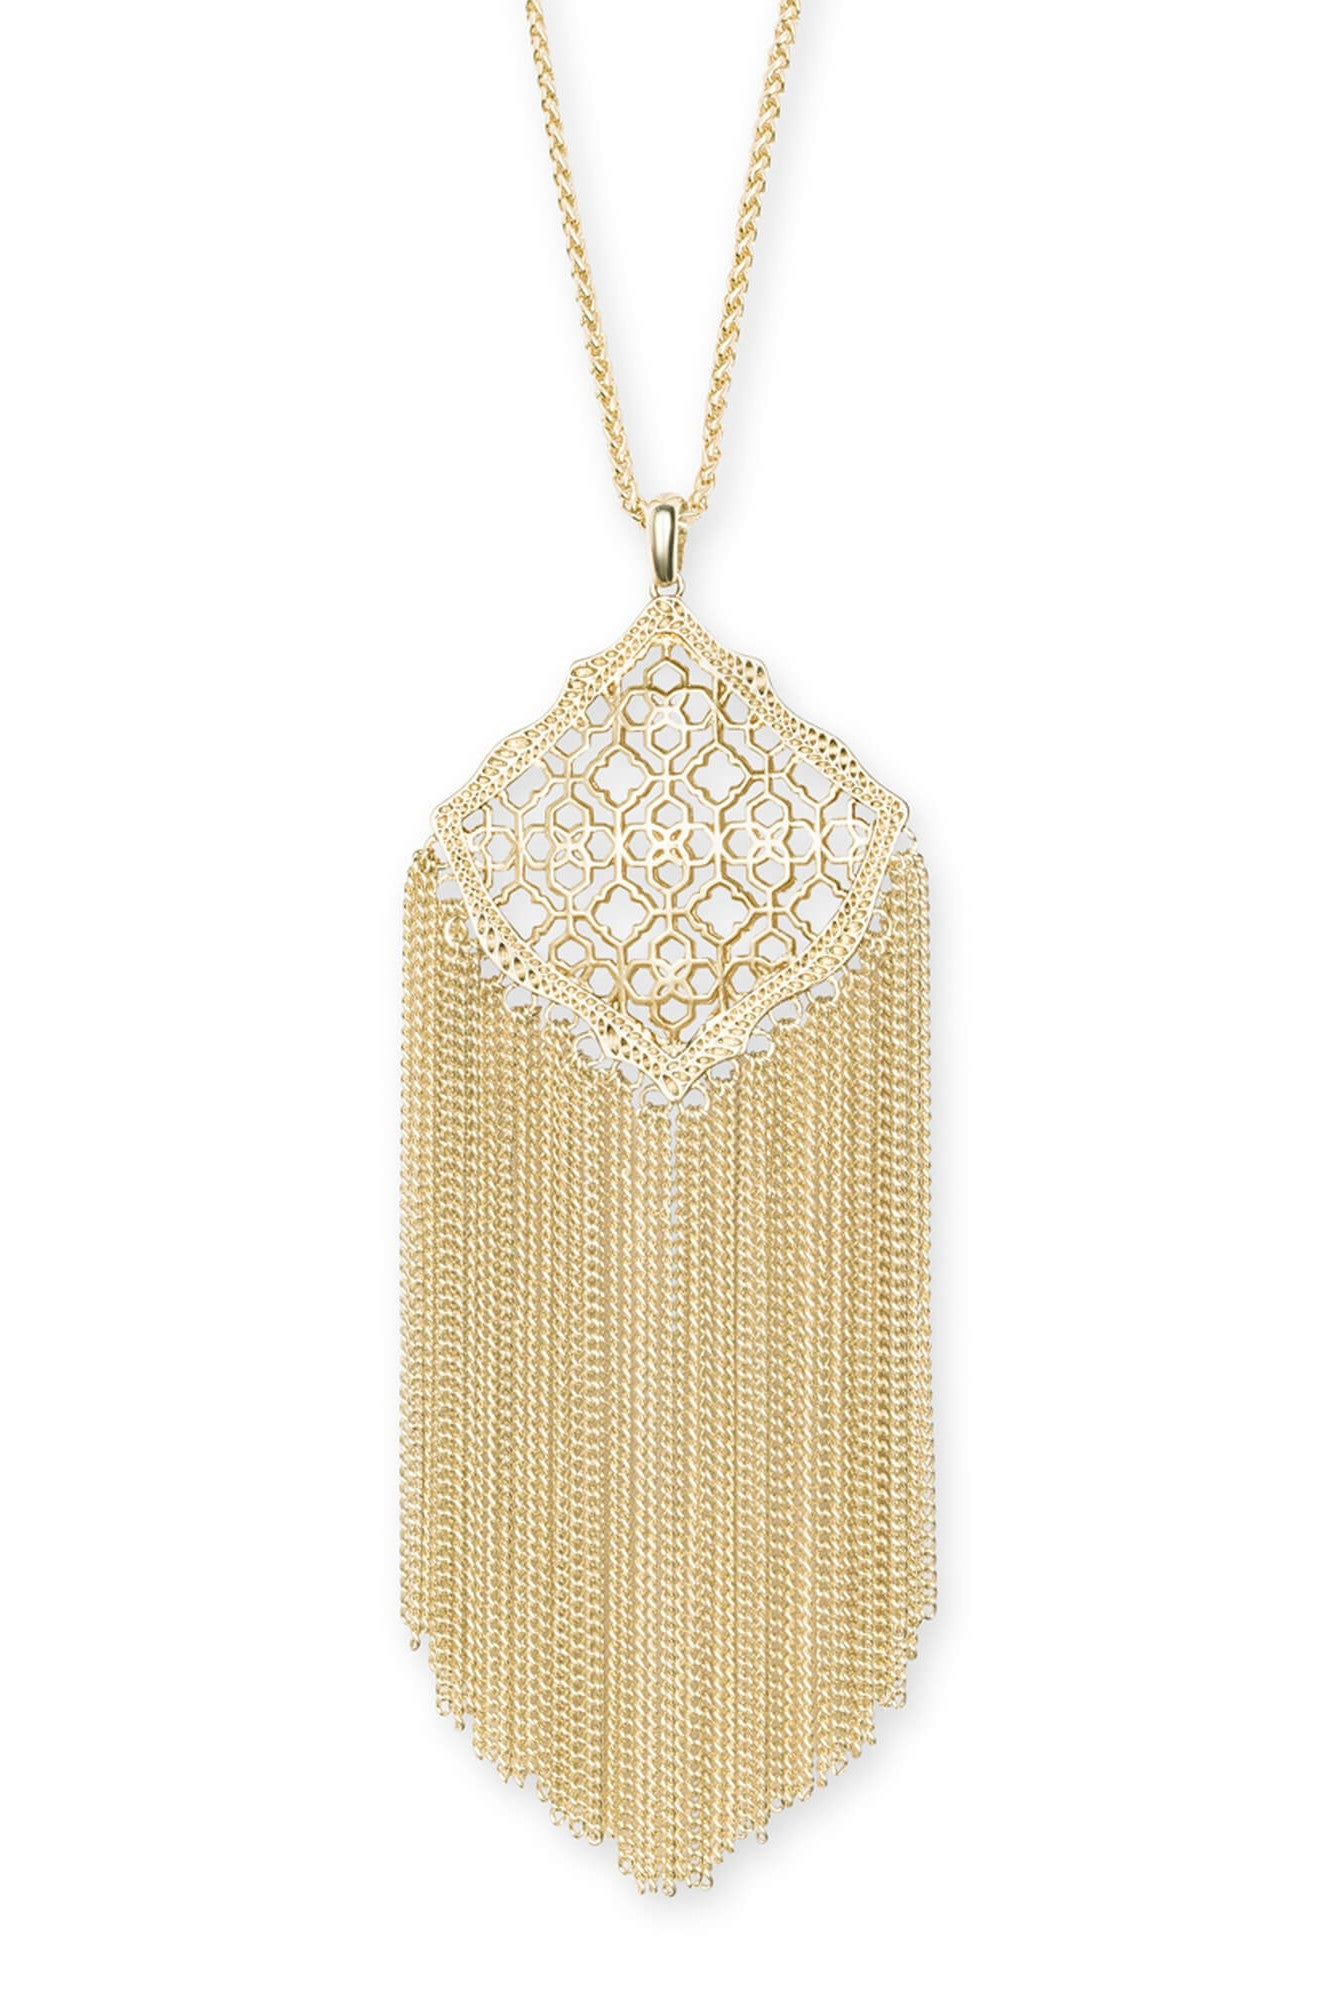 Kendra Scott Kingston Gold Long Pendant Necklace In Gold Filigree Mix